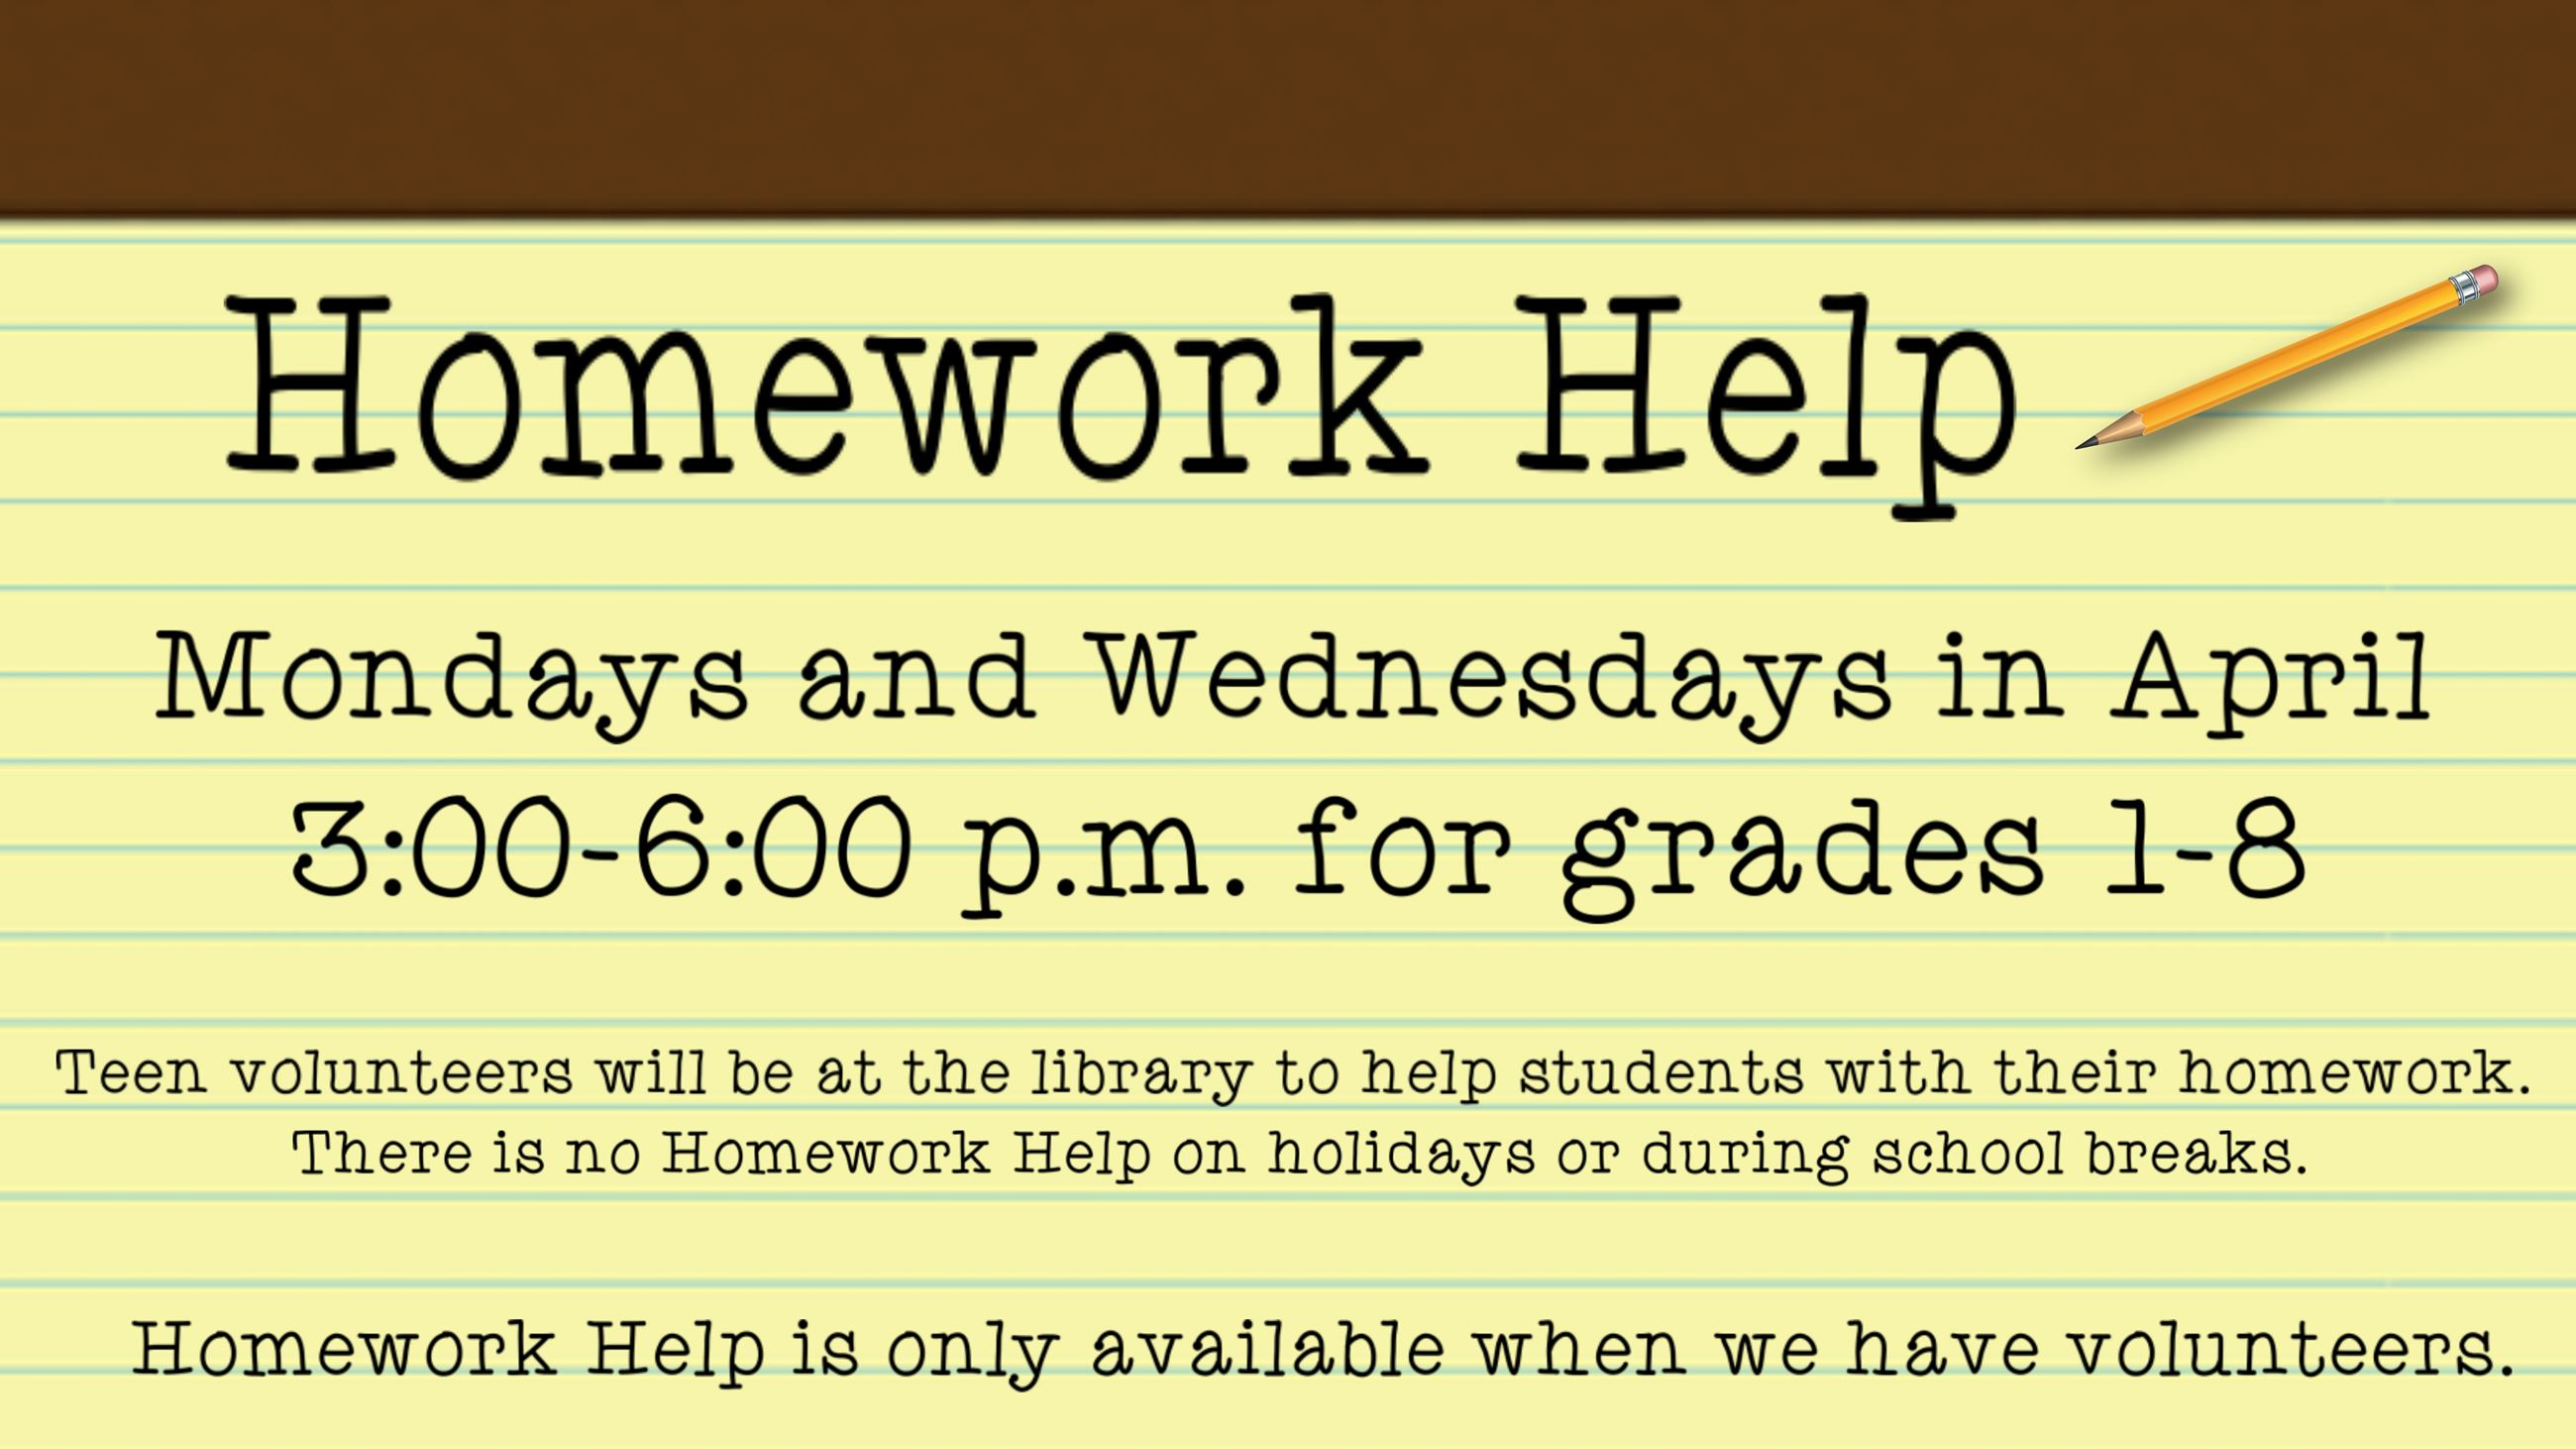 Homework Help. Mondays and Wednesdays in April. 3 to 6 p.m. for grades 1 through 8. Homework help is